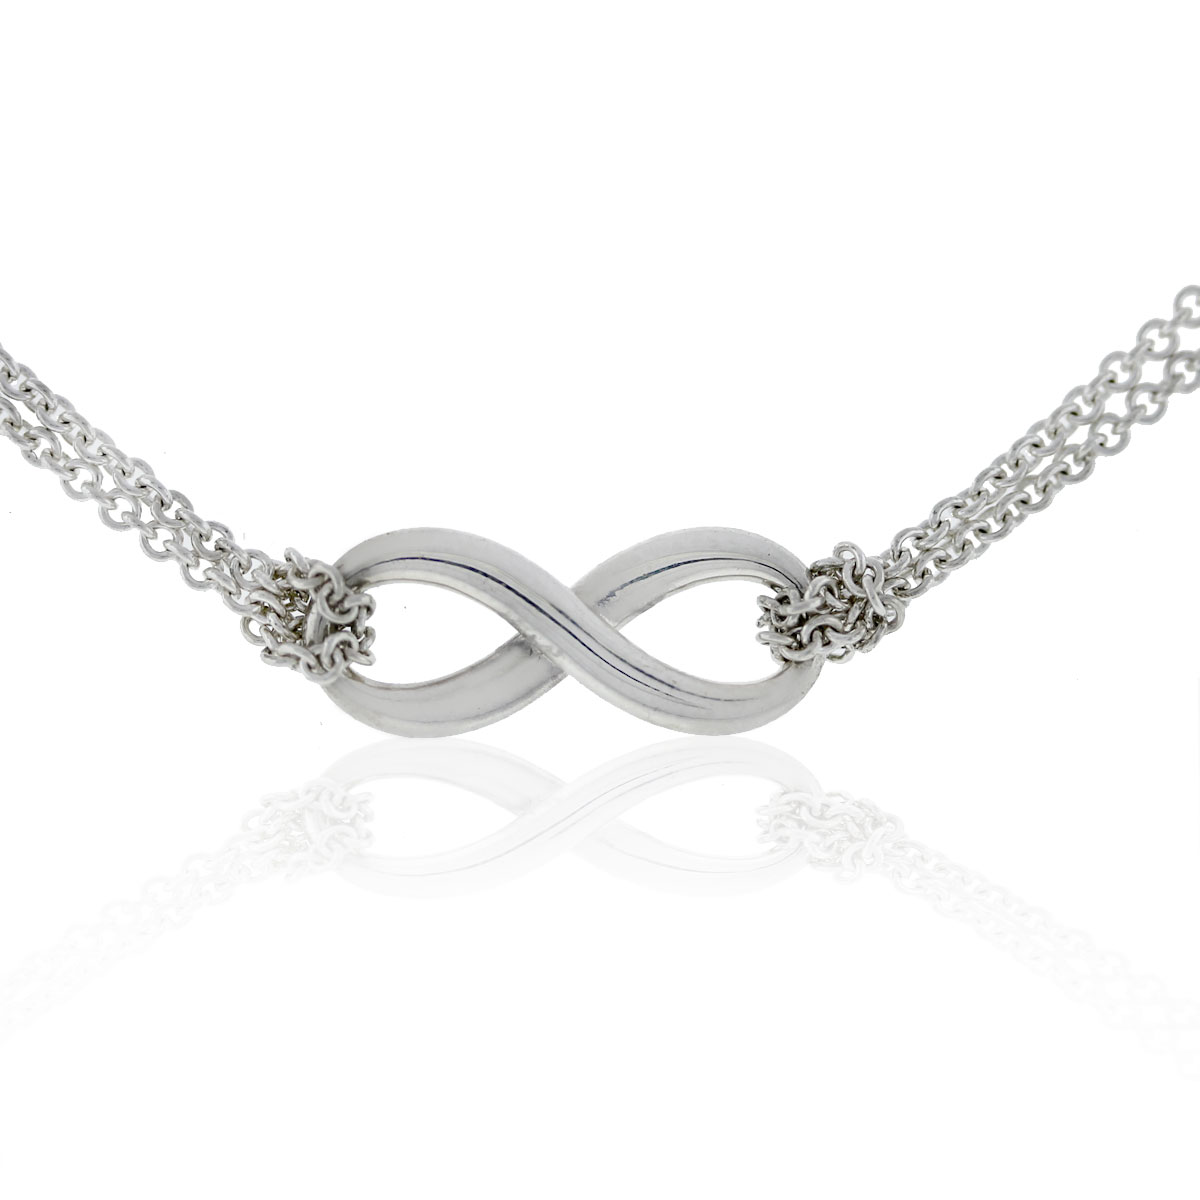 8c44451bd98c5 Tiffany and Co. Sterling Silver Infinity Double Chain Pendant Necklace